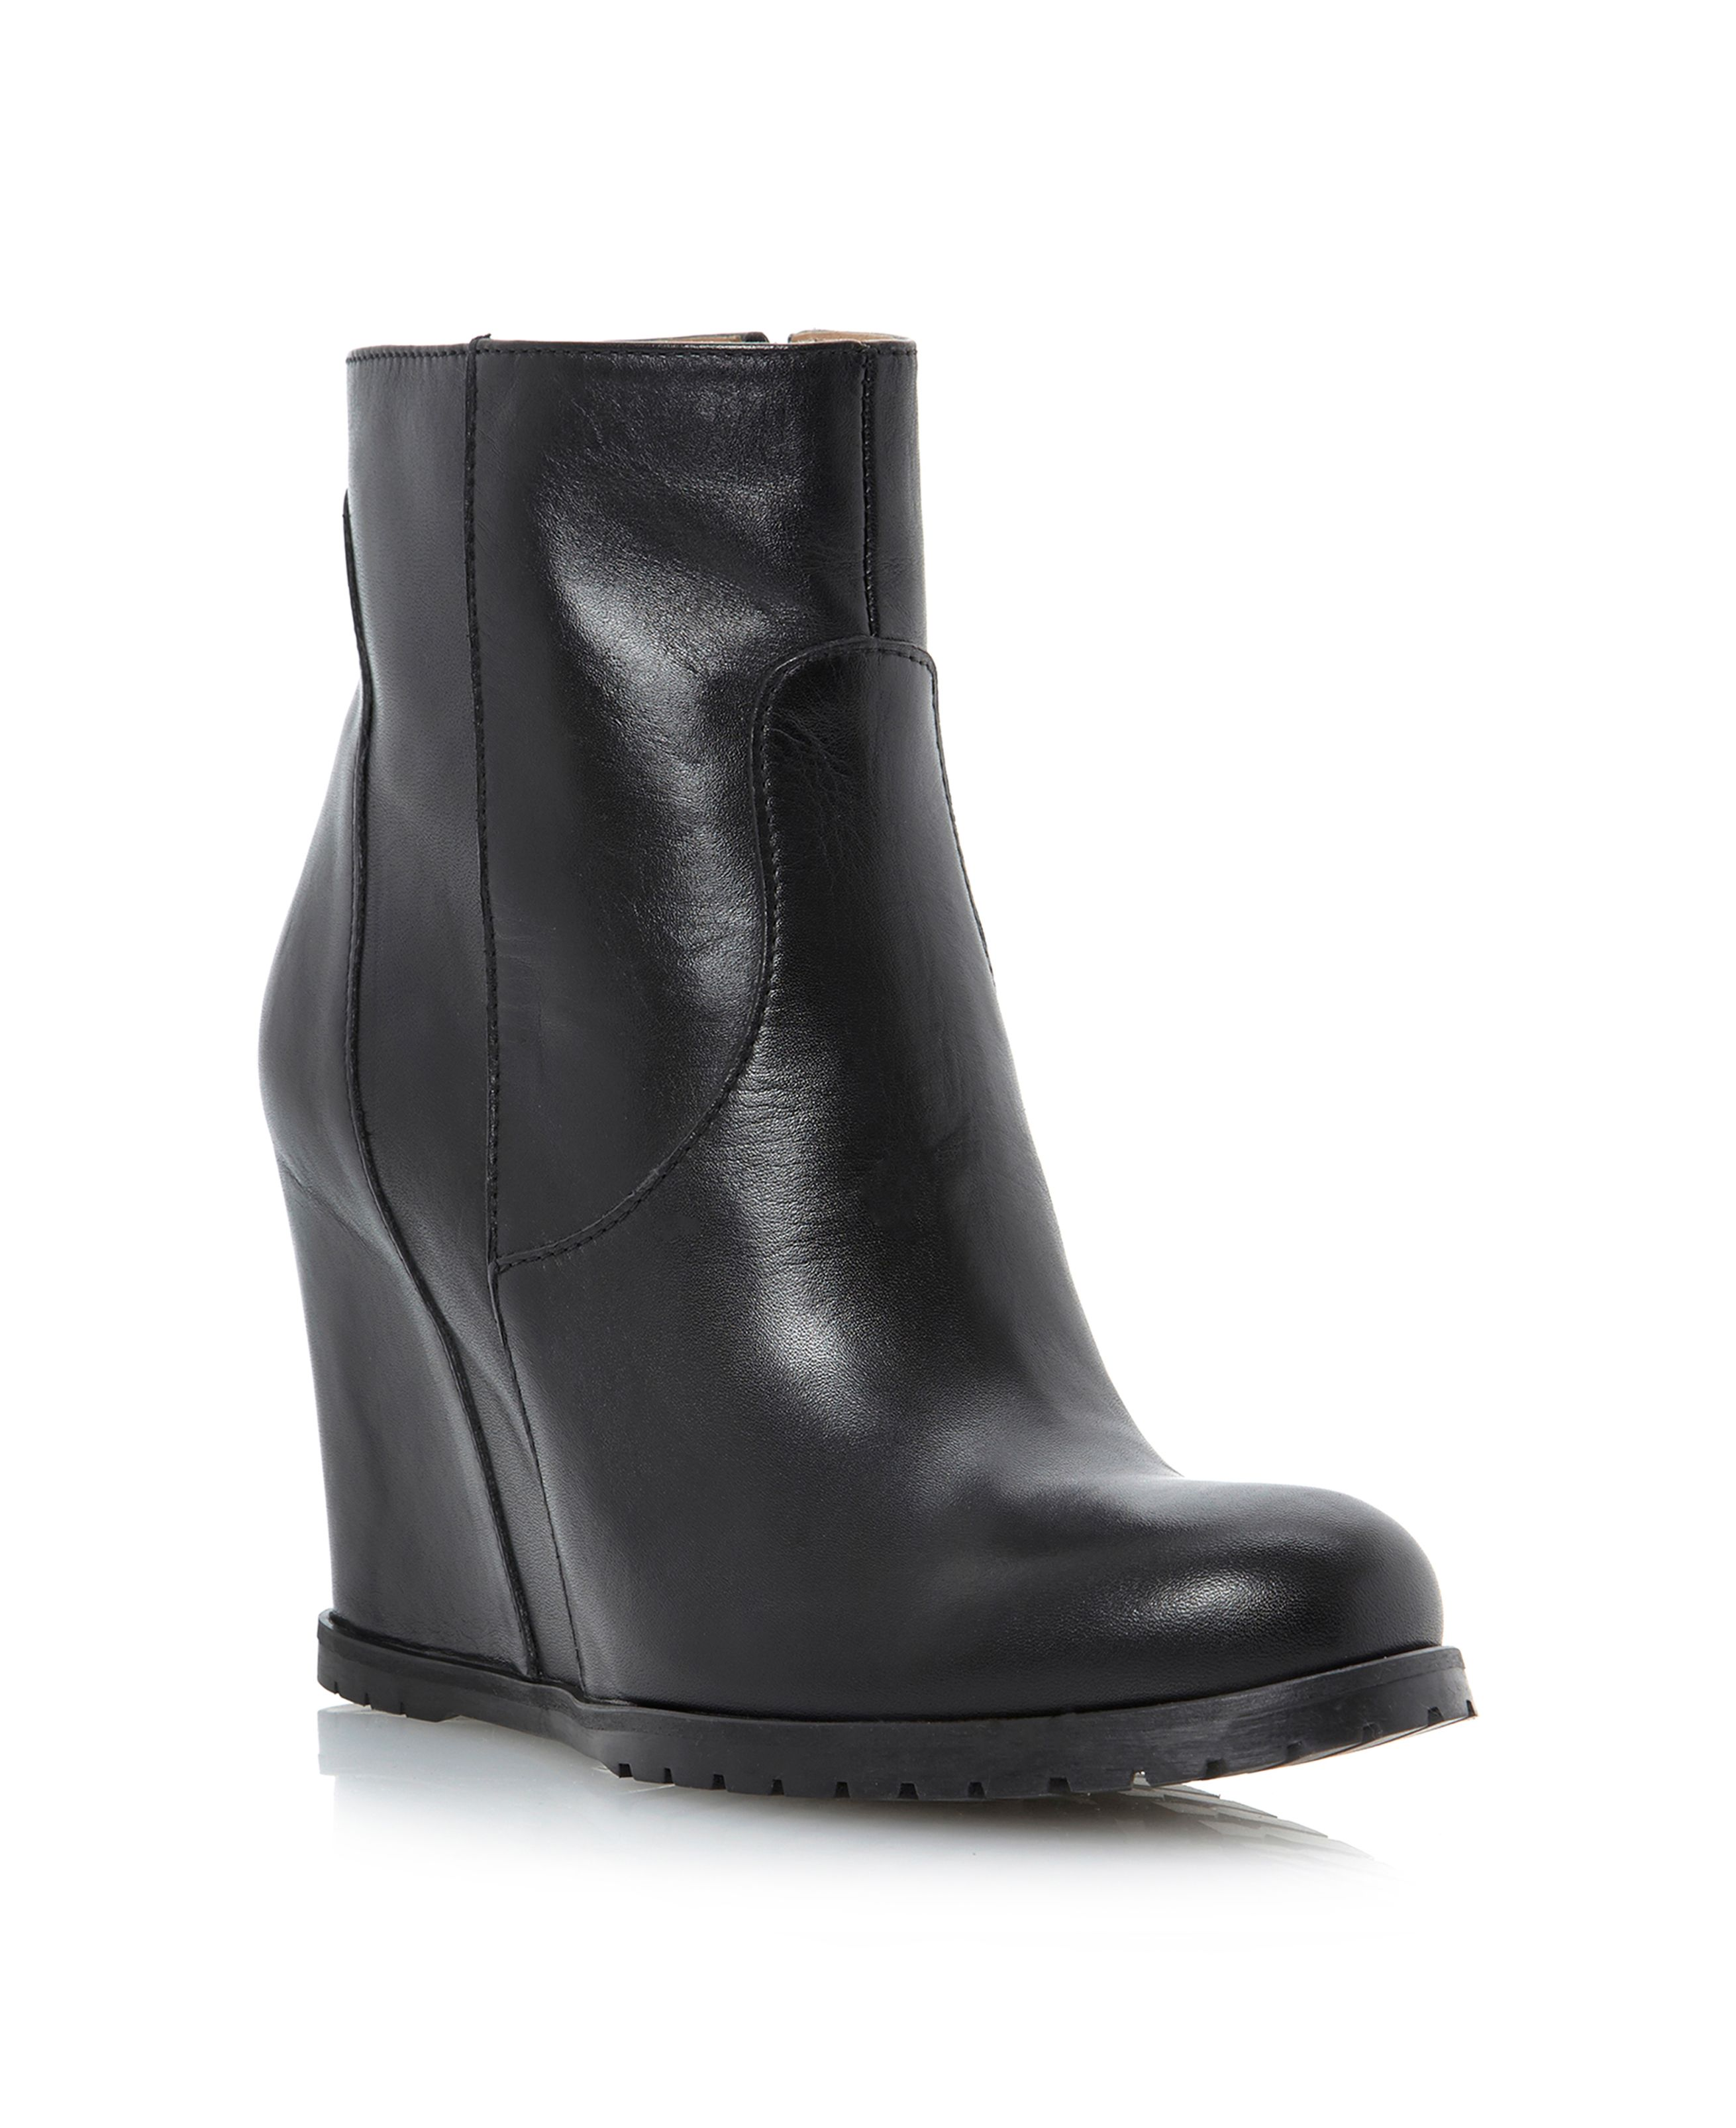 Pied A Terre Boots Shop For Cheap Women 39 S Footwear And